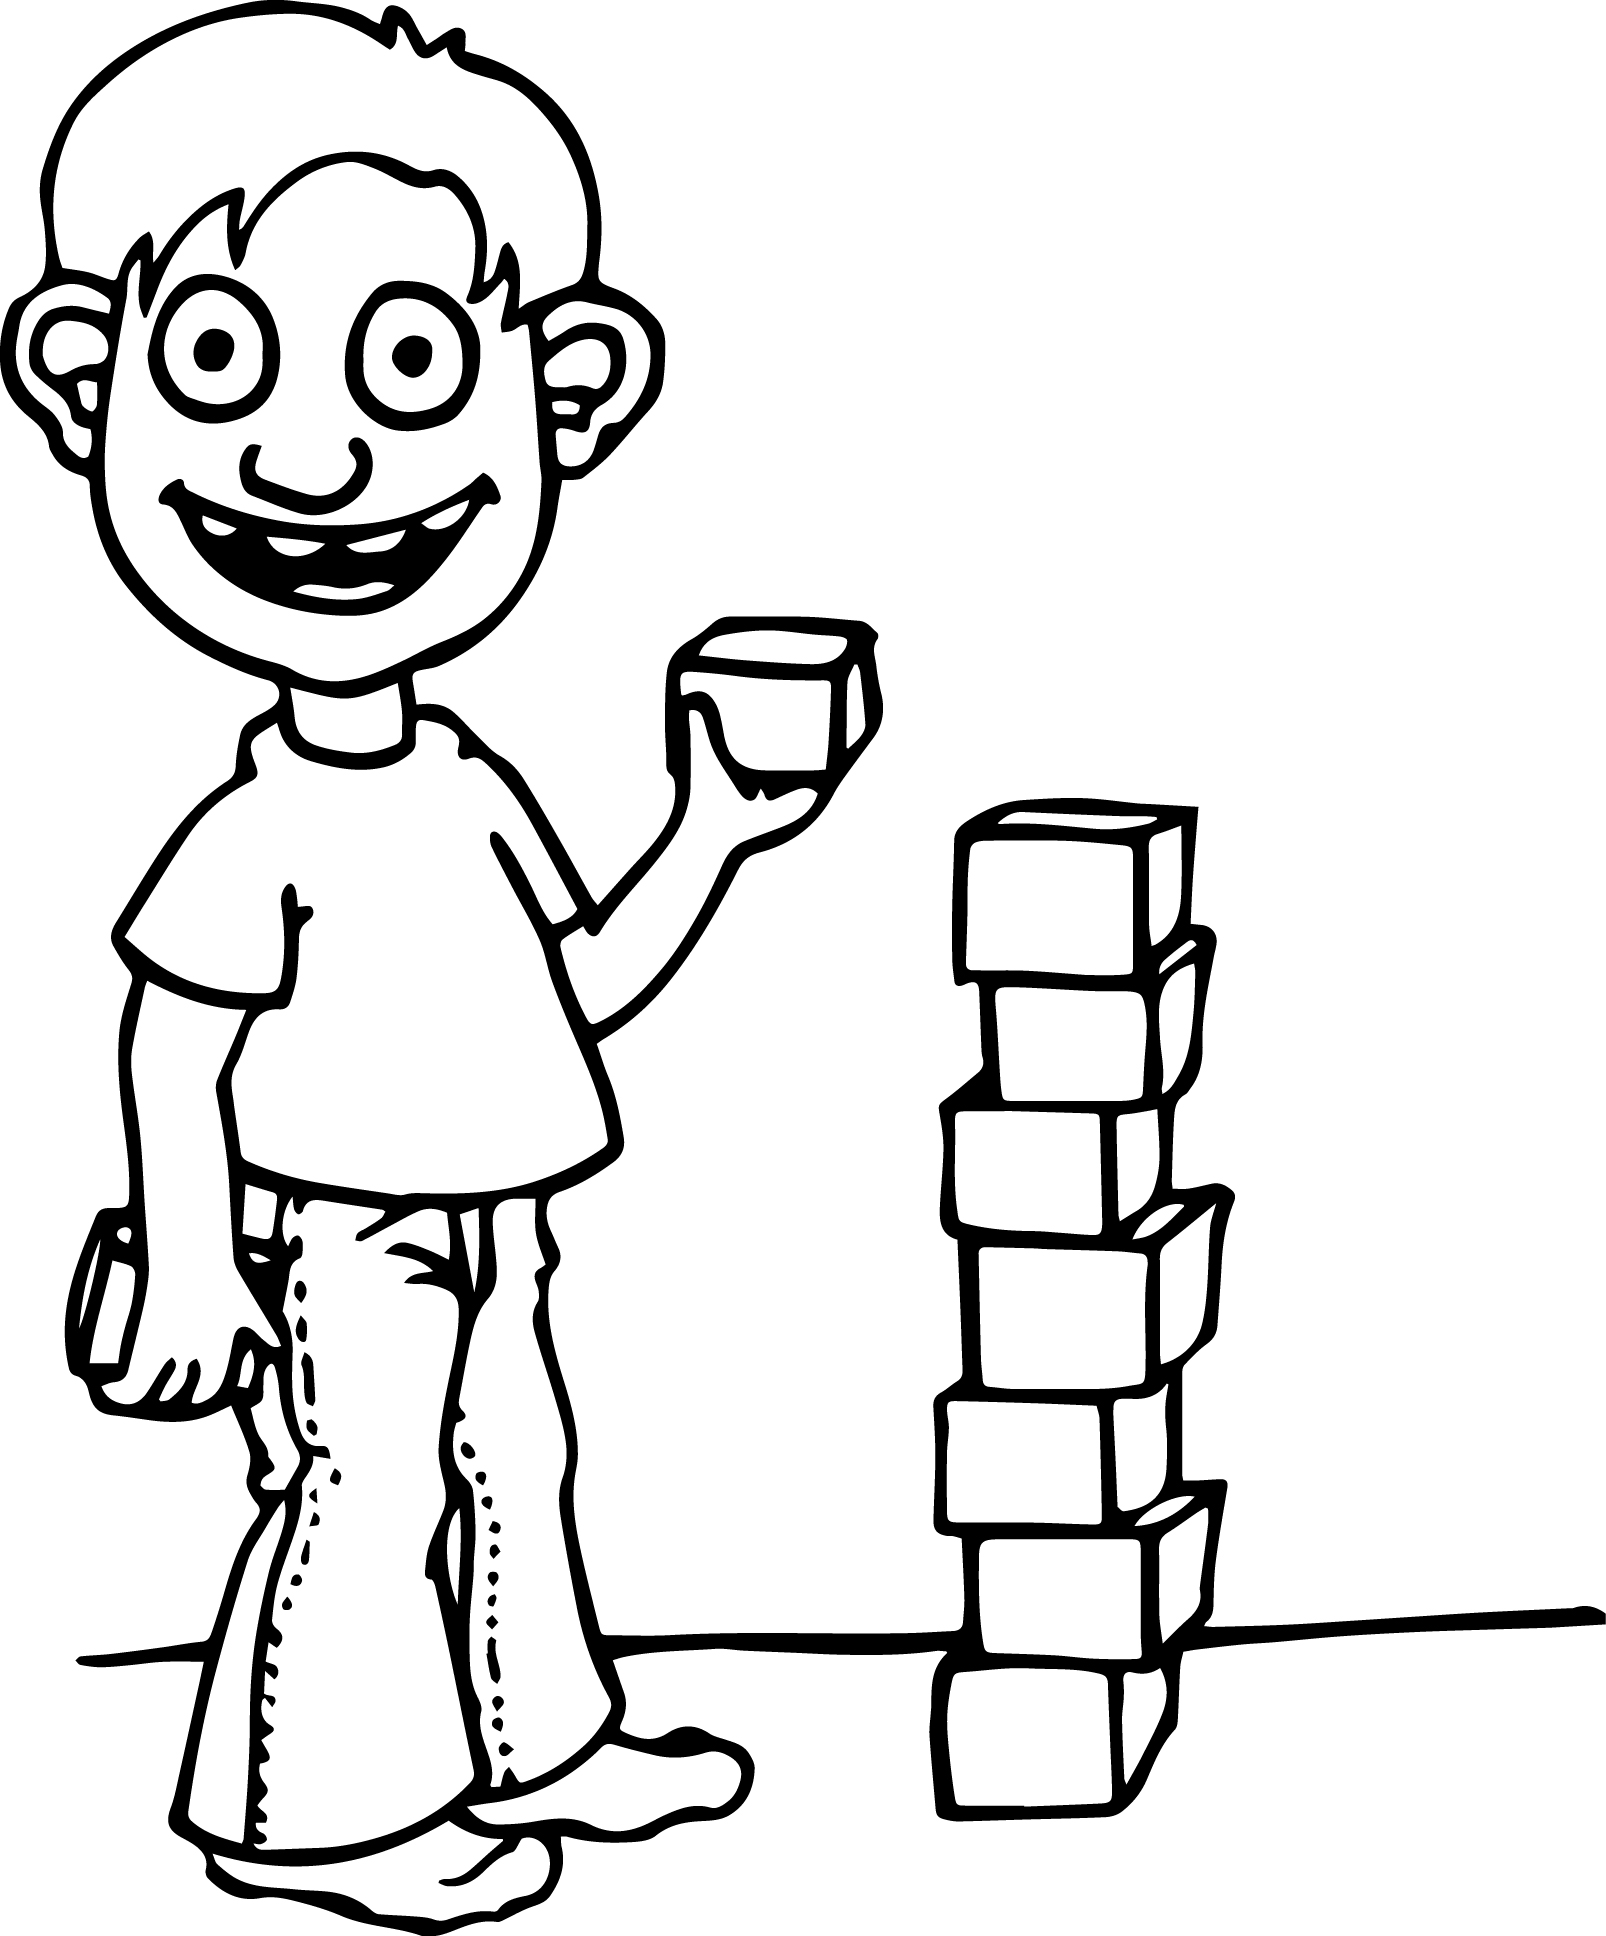 Children To String Box Coloring Page